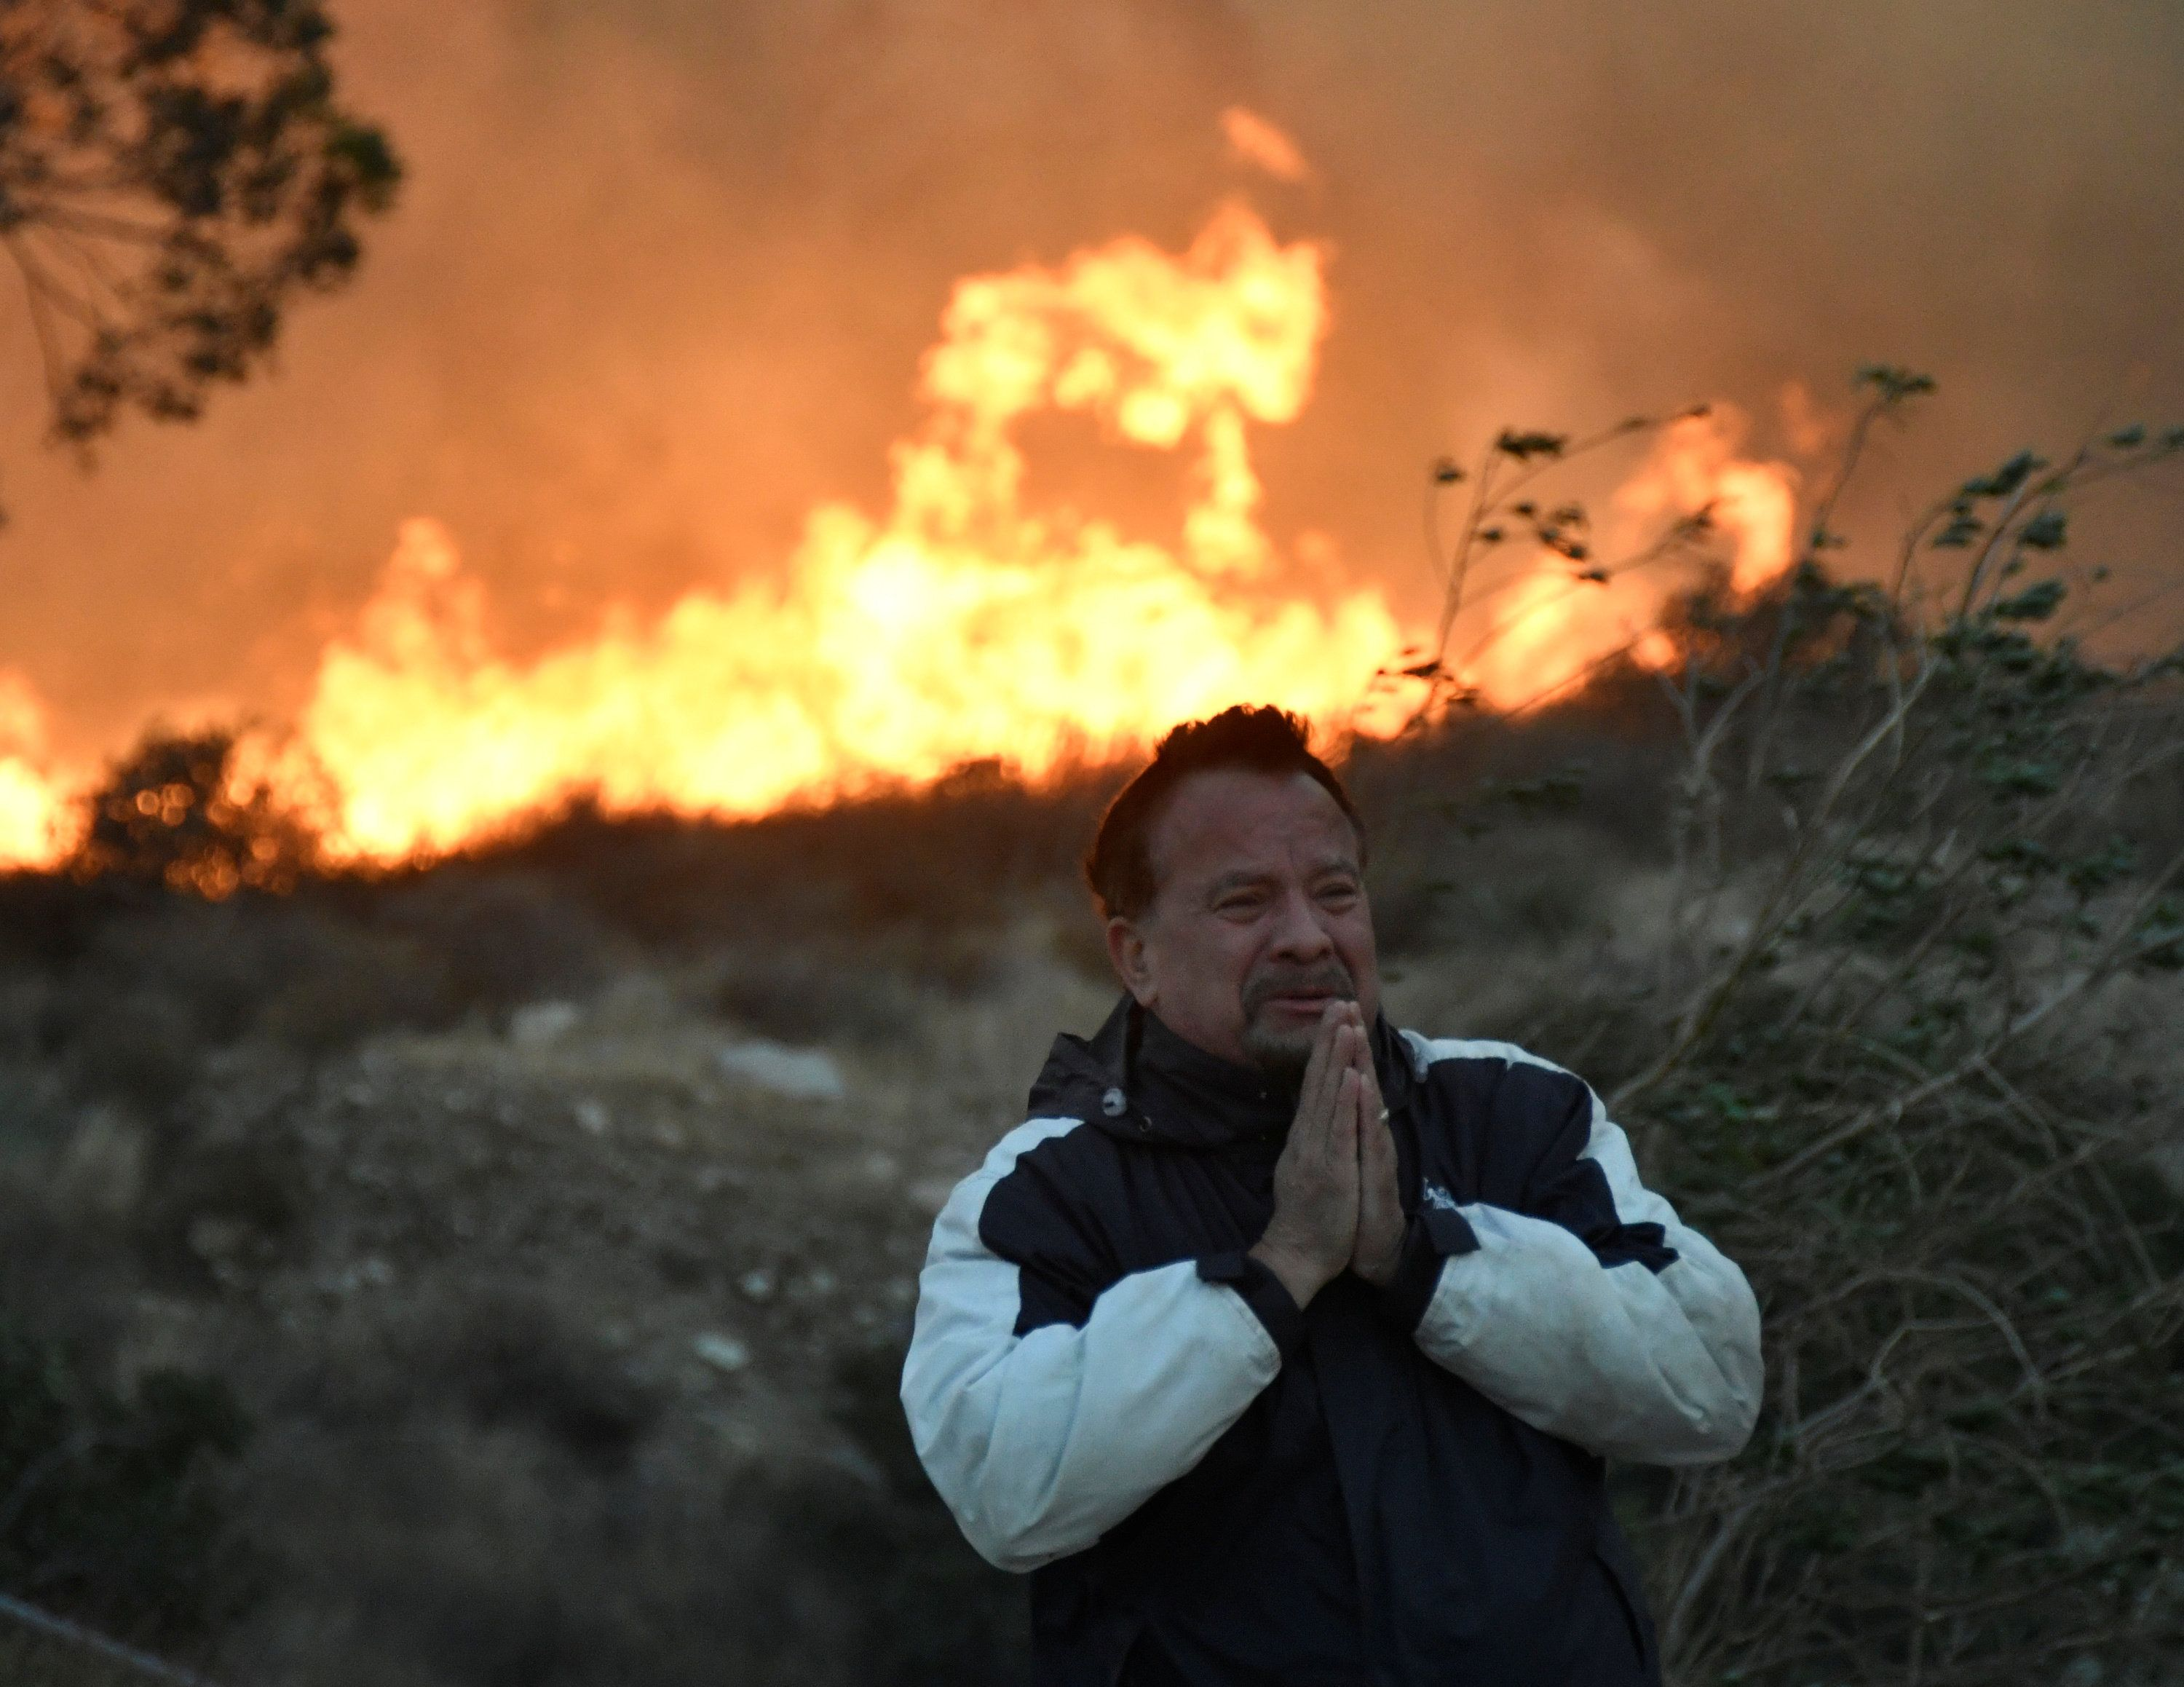 A man prays as the Creek fire advances behind him in the San Fernando Valley area of Los